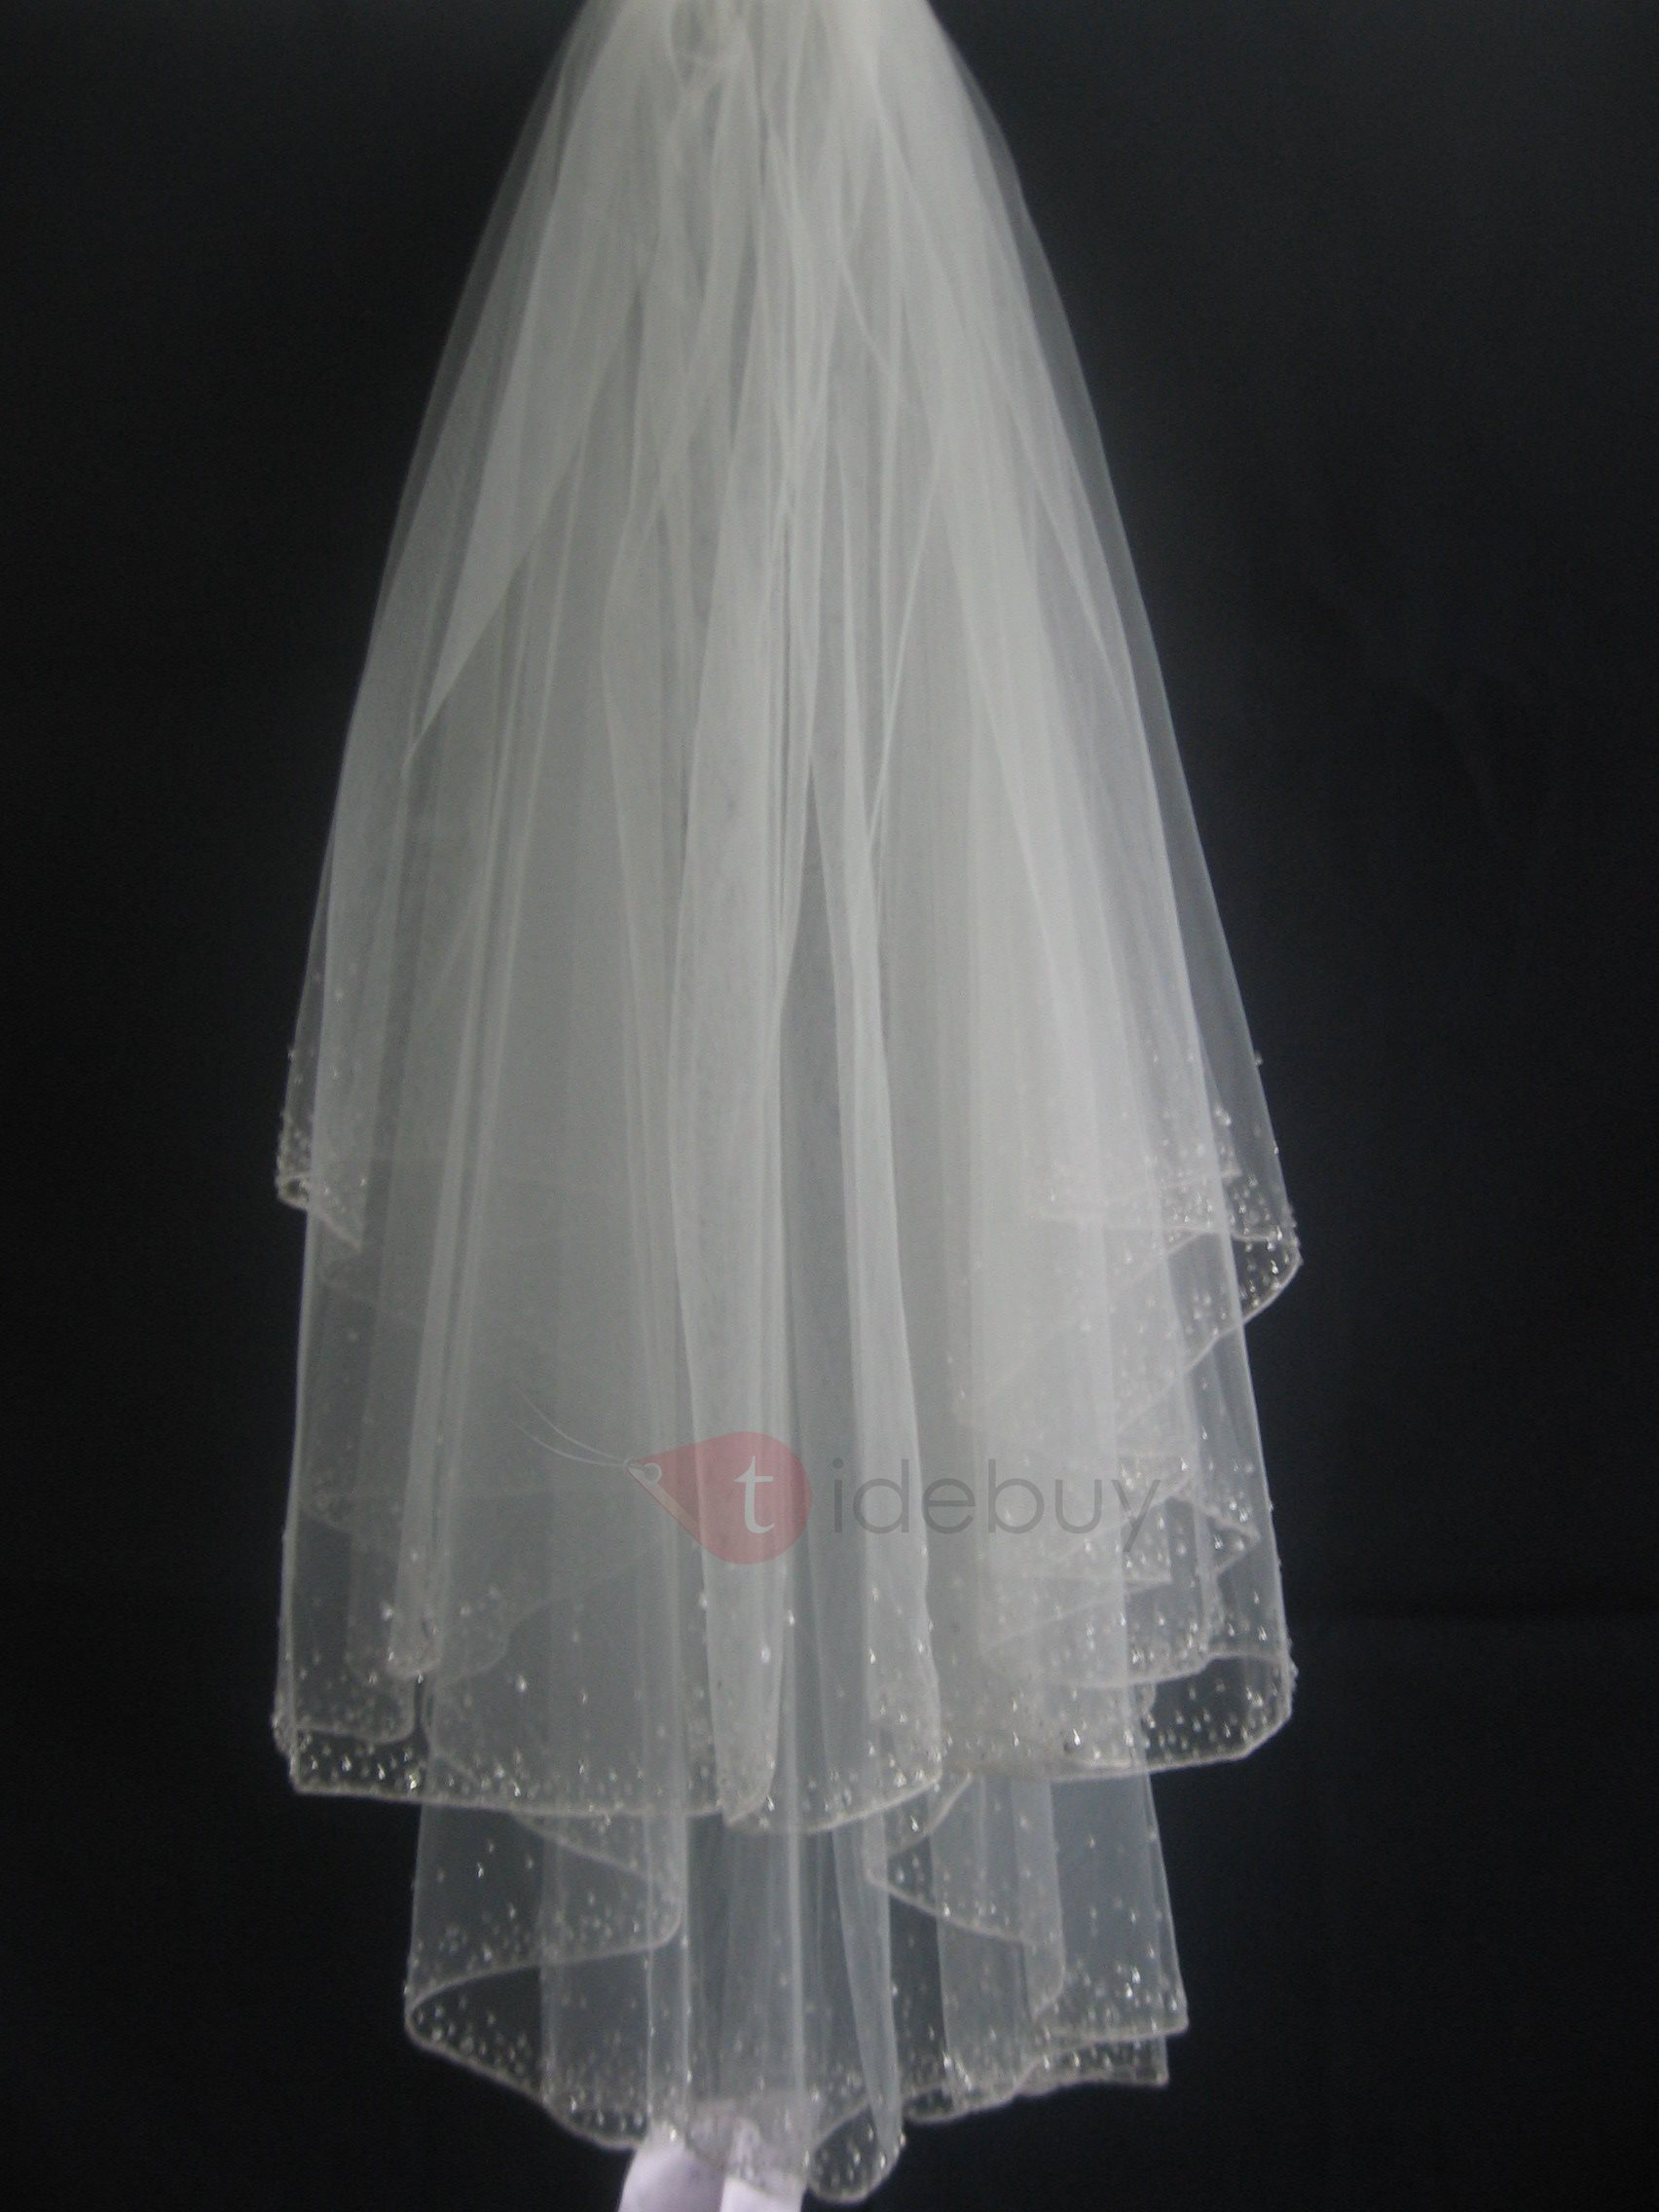 Lovely Tidebuy Elbow Style Wedding Bridal Veil with Beaded Edge